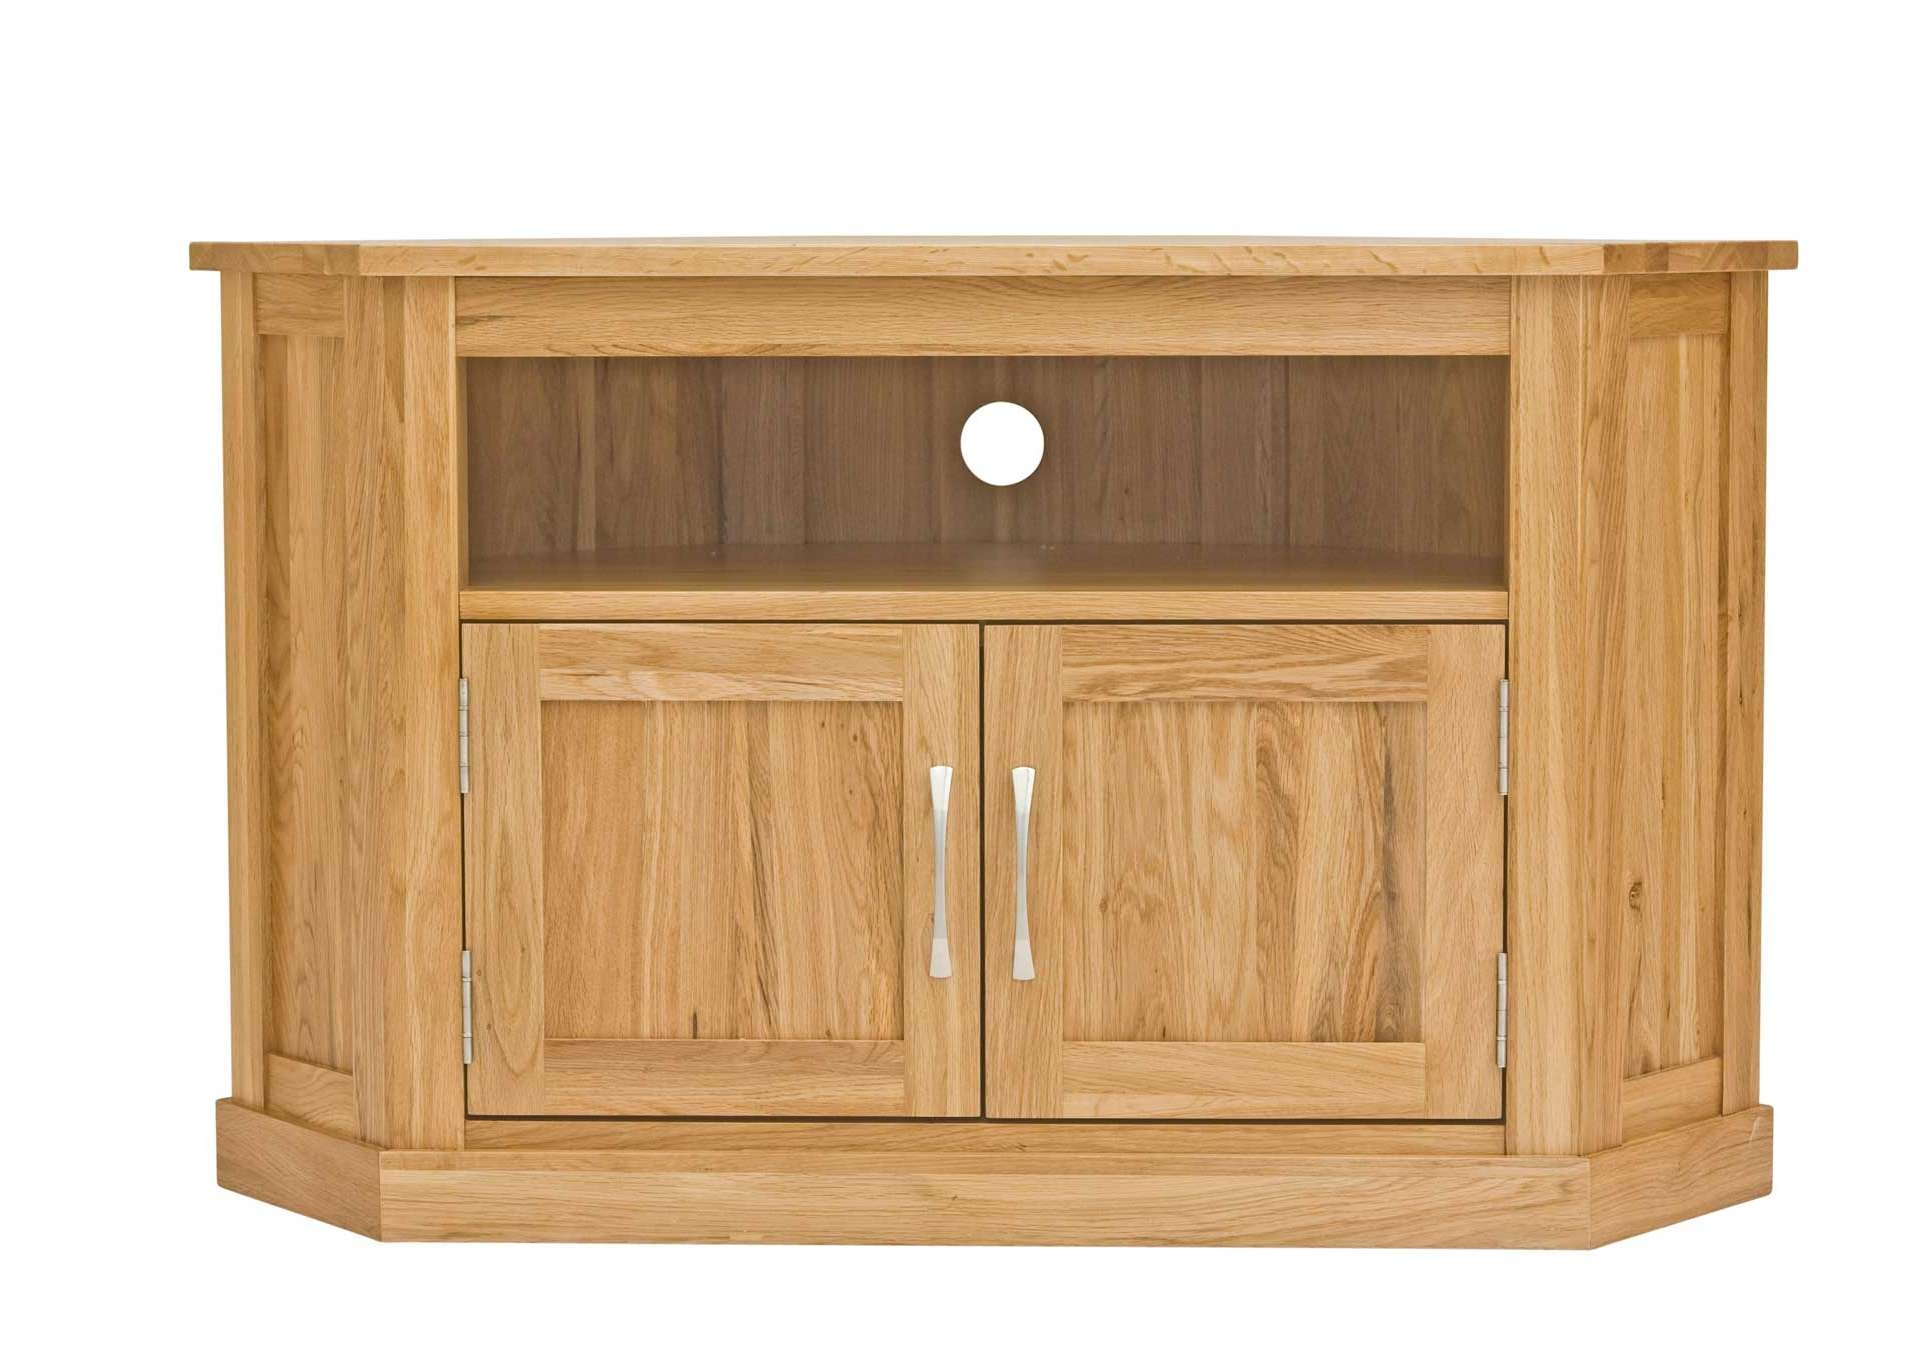 Classic Oak Corner Television Cabinet | Hampshire Furniture Within Solid Wood Corner Tv Cabinets (View 14 of 20)